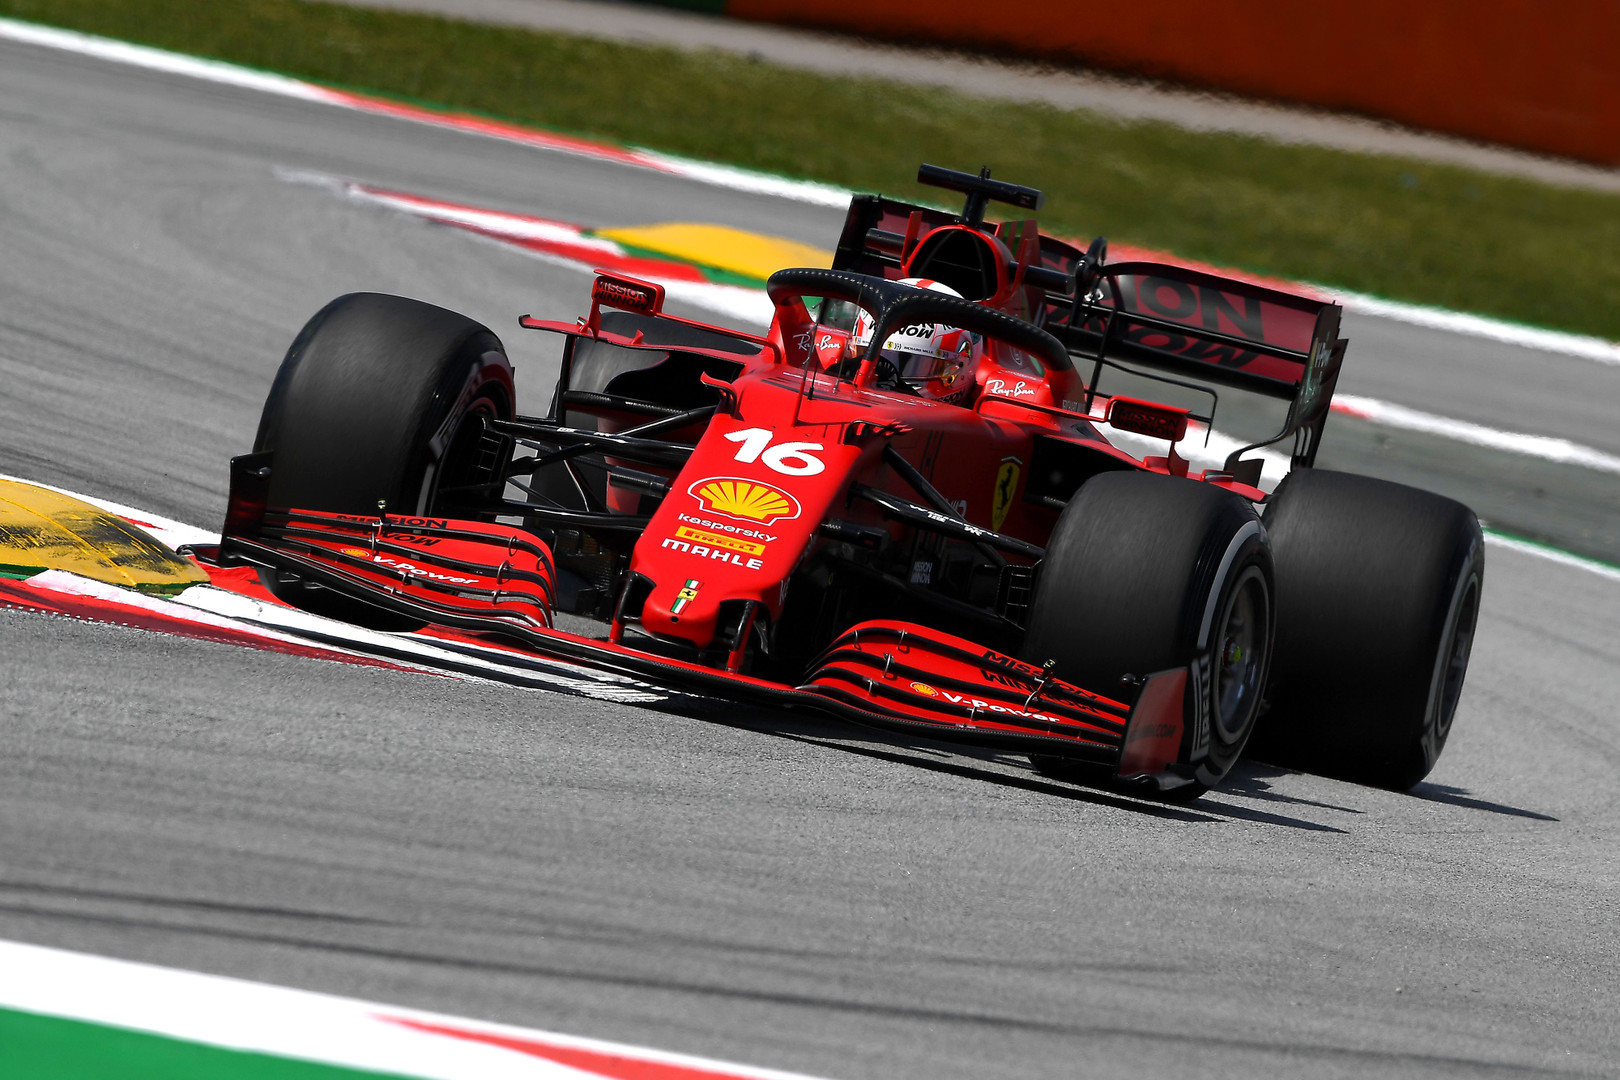 Ferrari says '90% to 95%' of resources now devoted to 2022 car